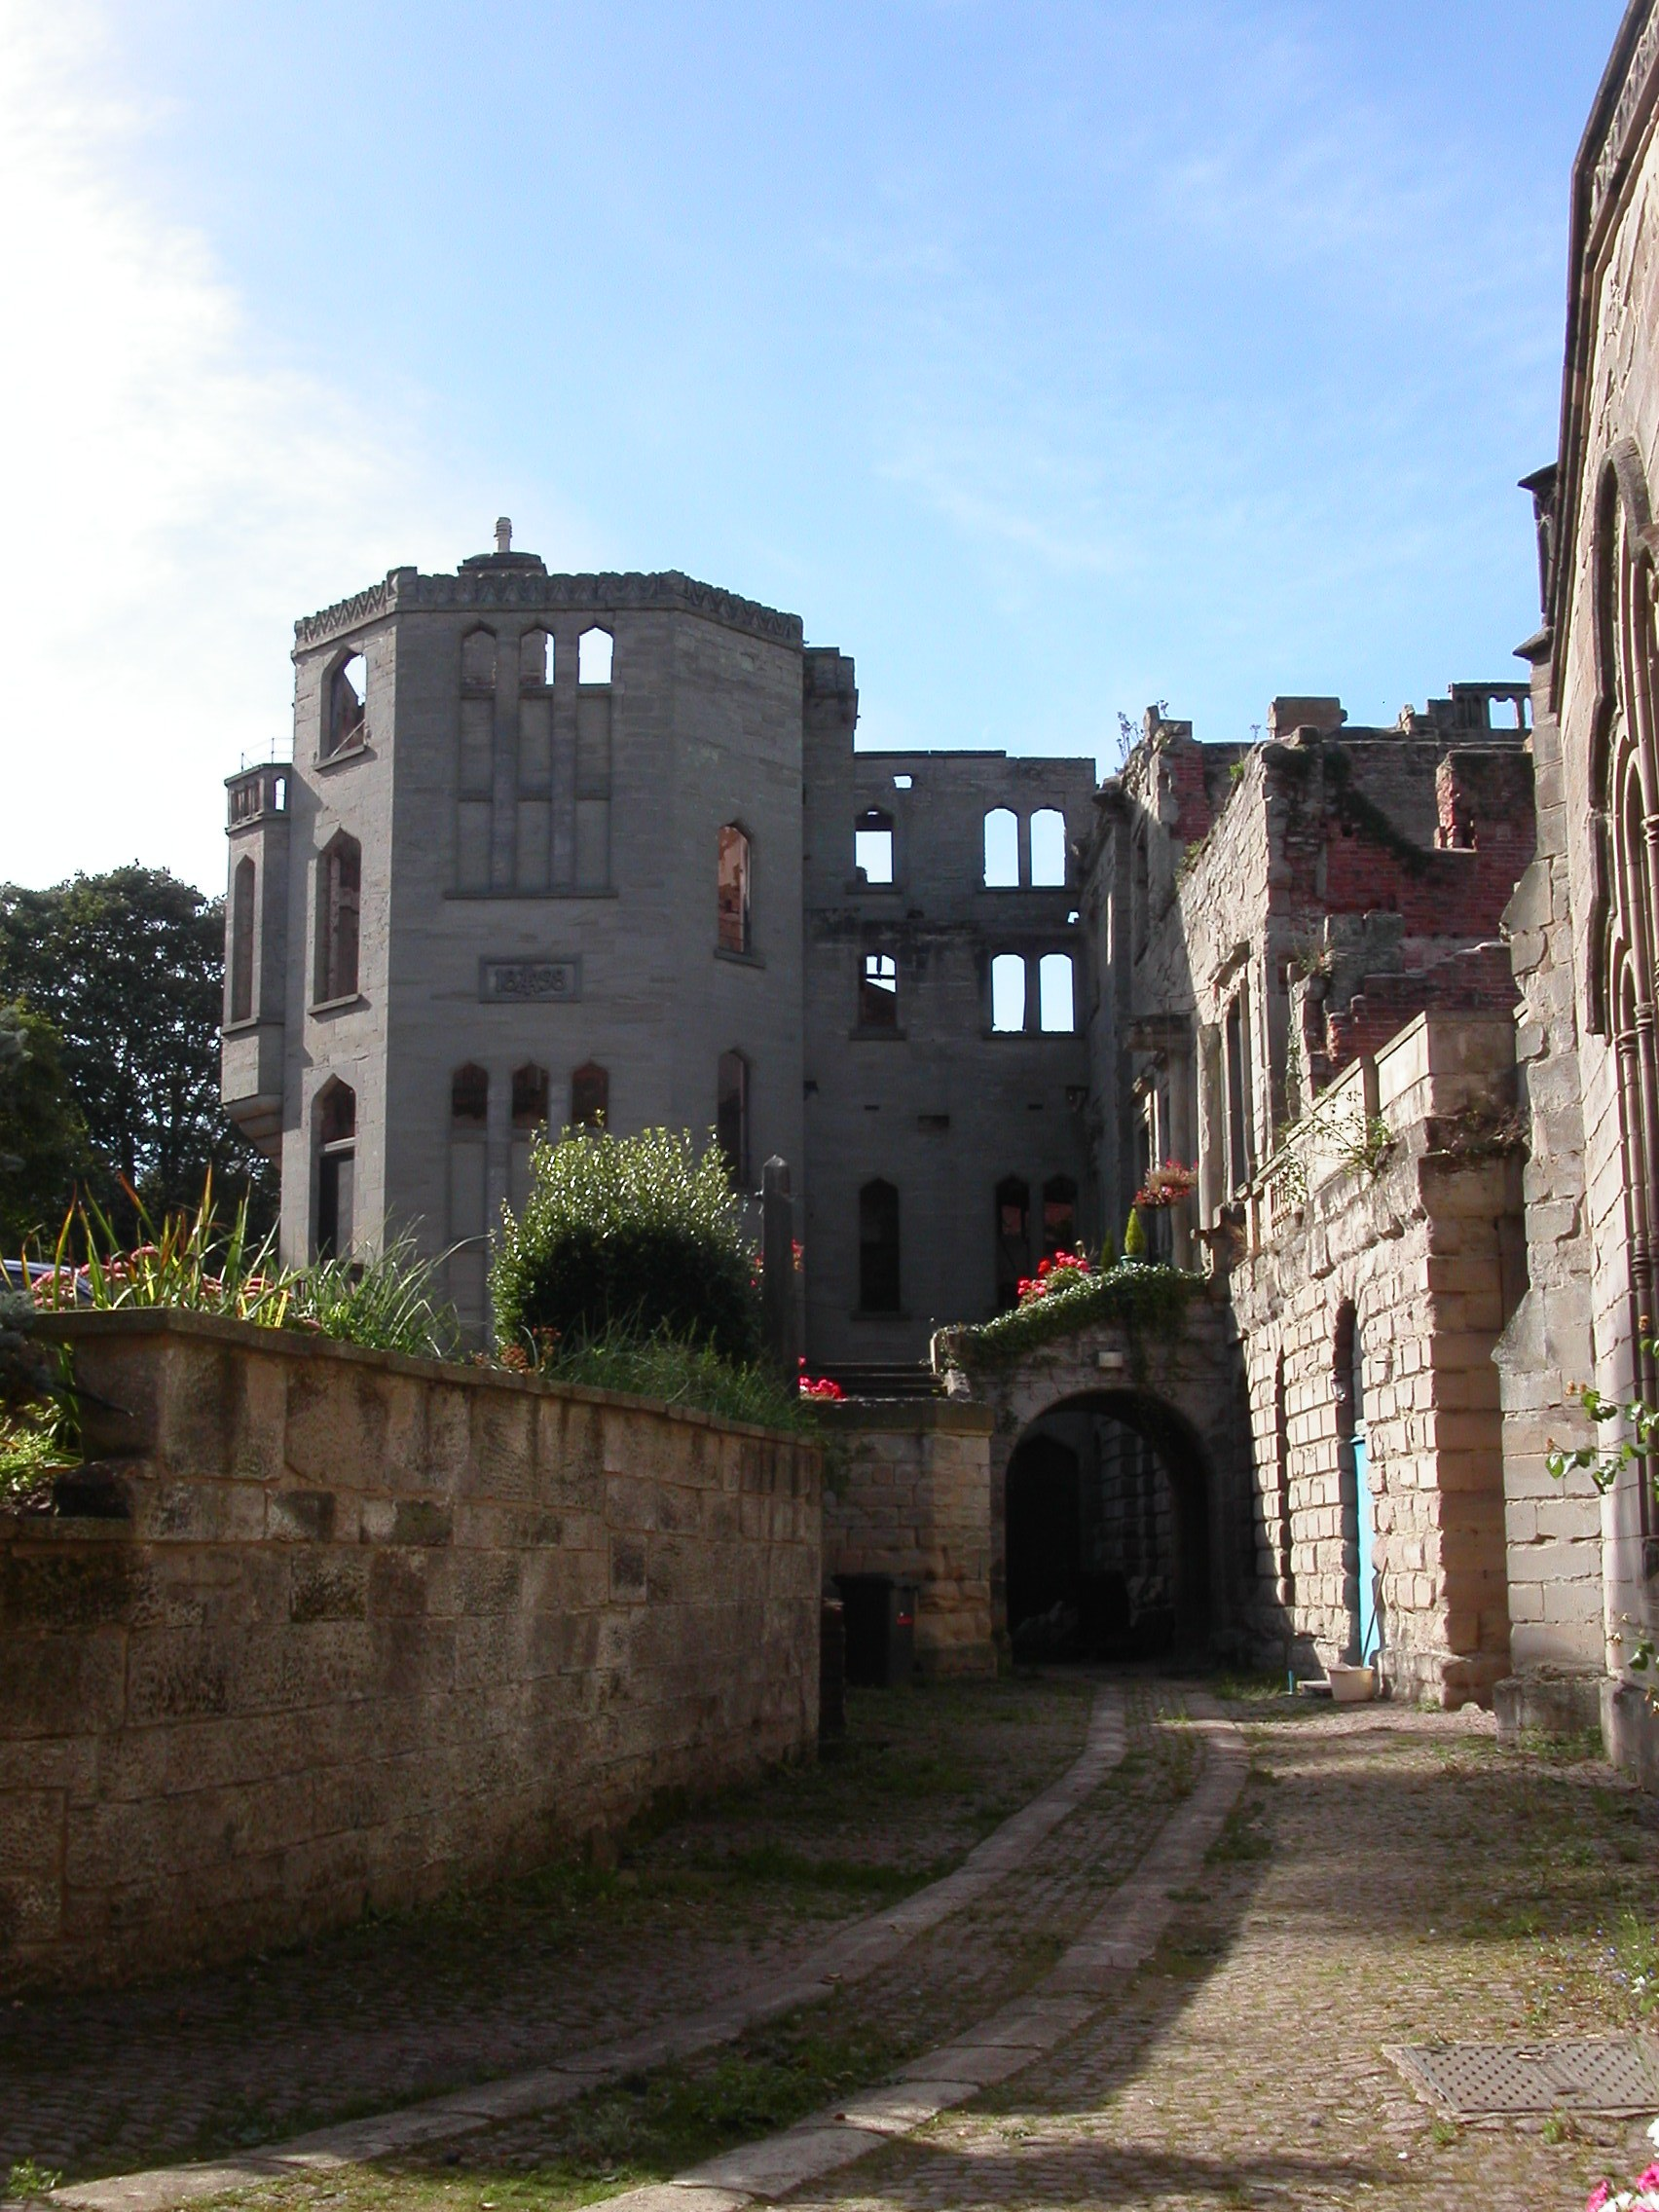 The Manor House at Guy's Cliffe (2009)